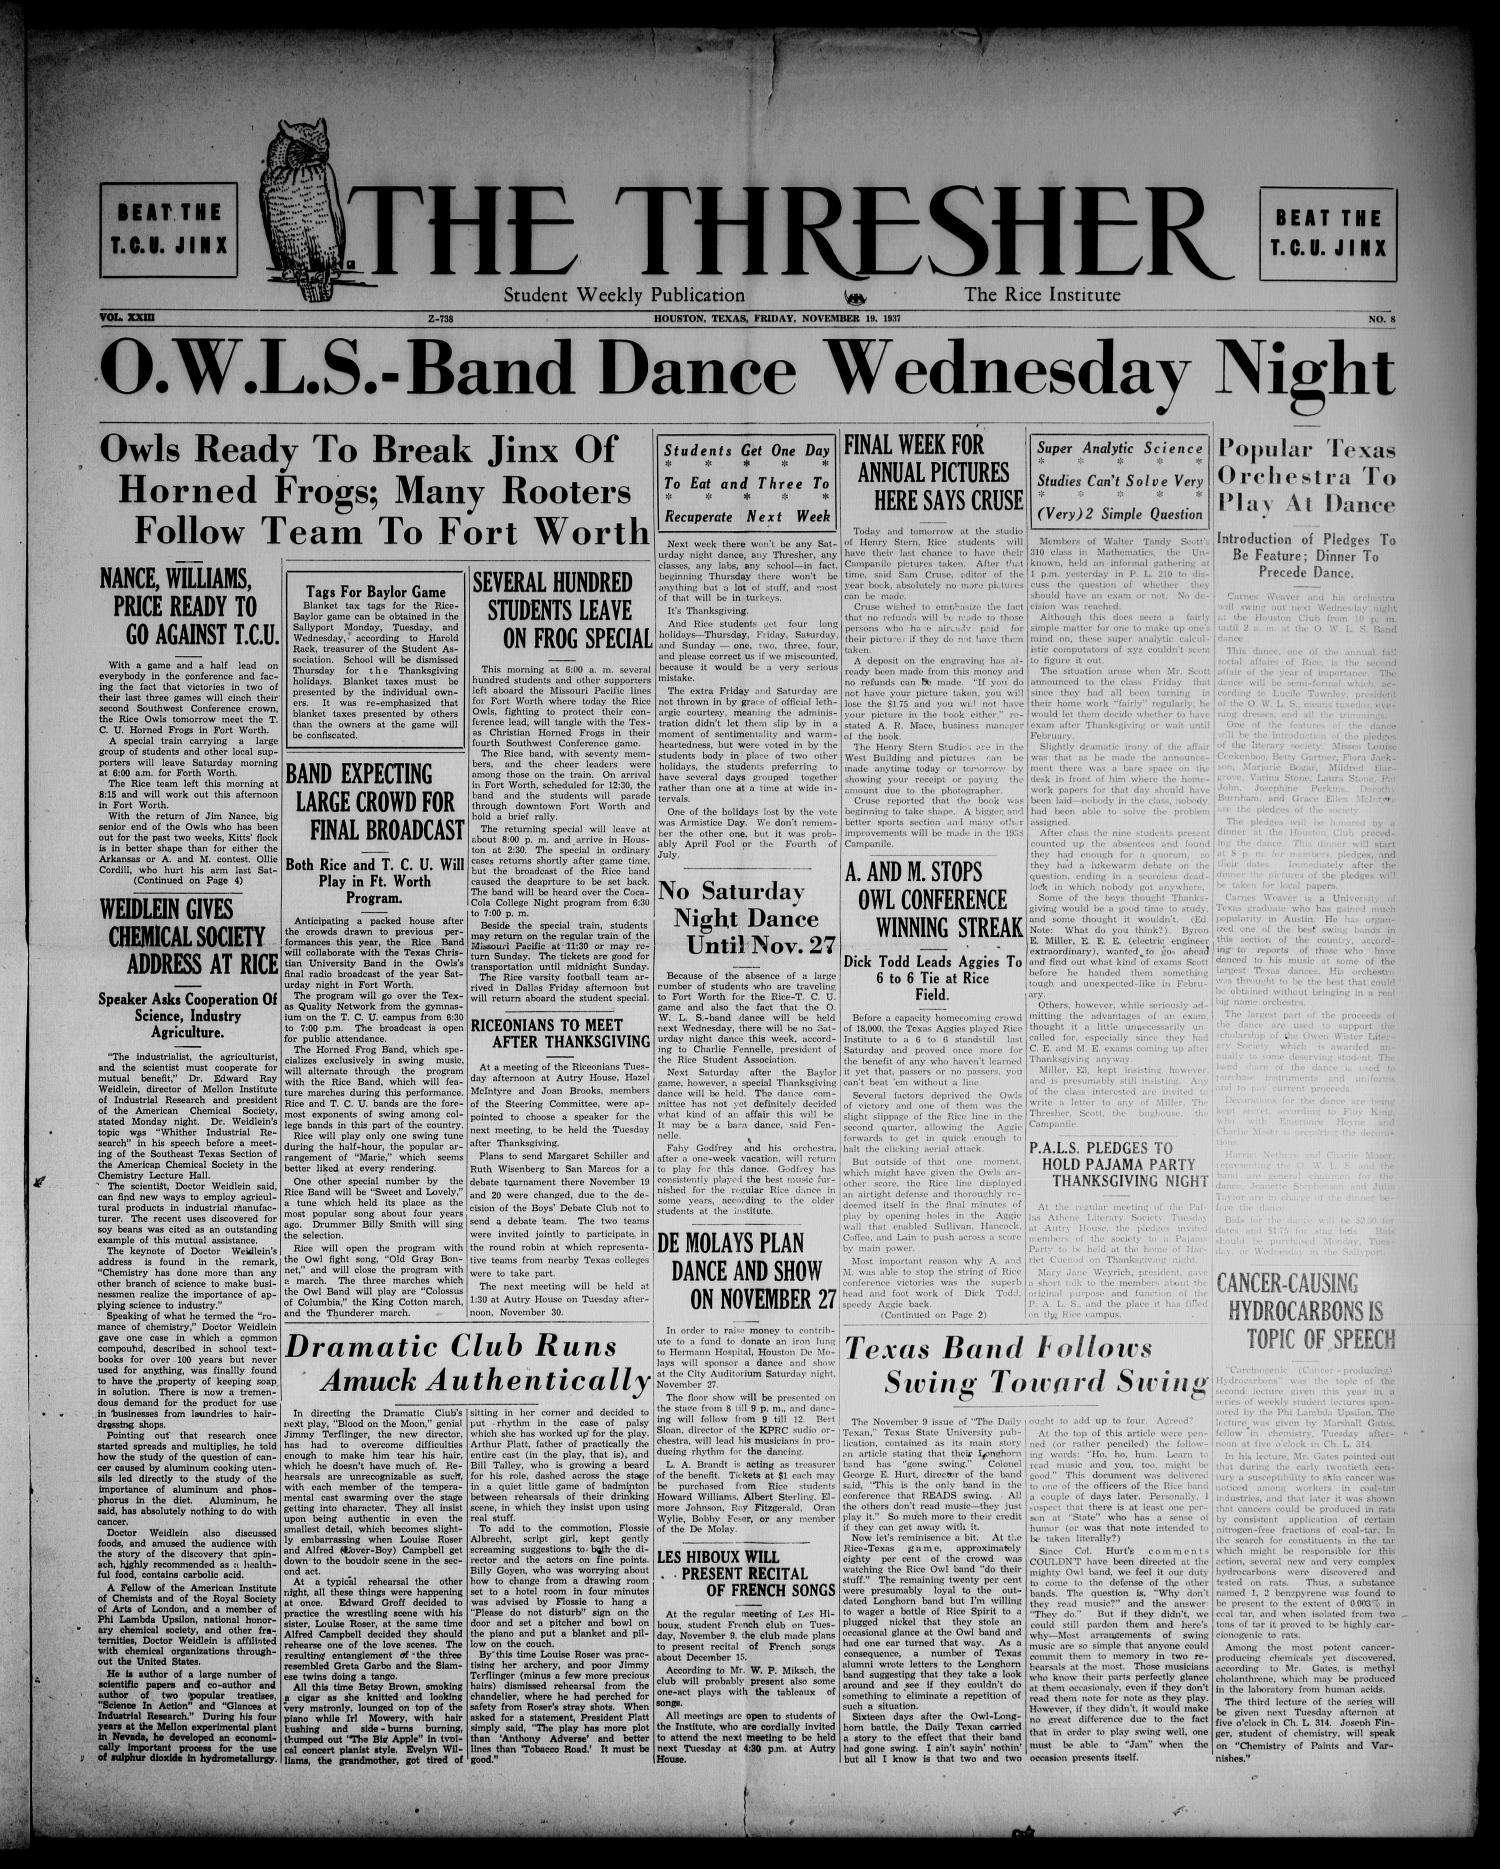 The Thresher (Houston, Tex.), Vol. 23, No. 8, Ed. 1 Friday, November 19, 1937                                                                                                      [Sequence #]: 1 of 4